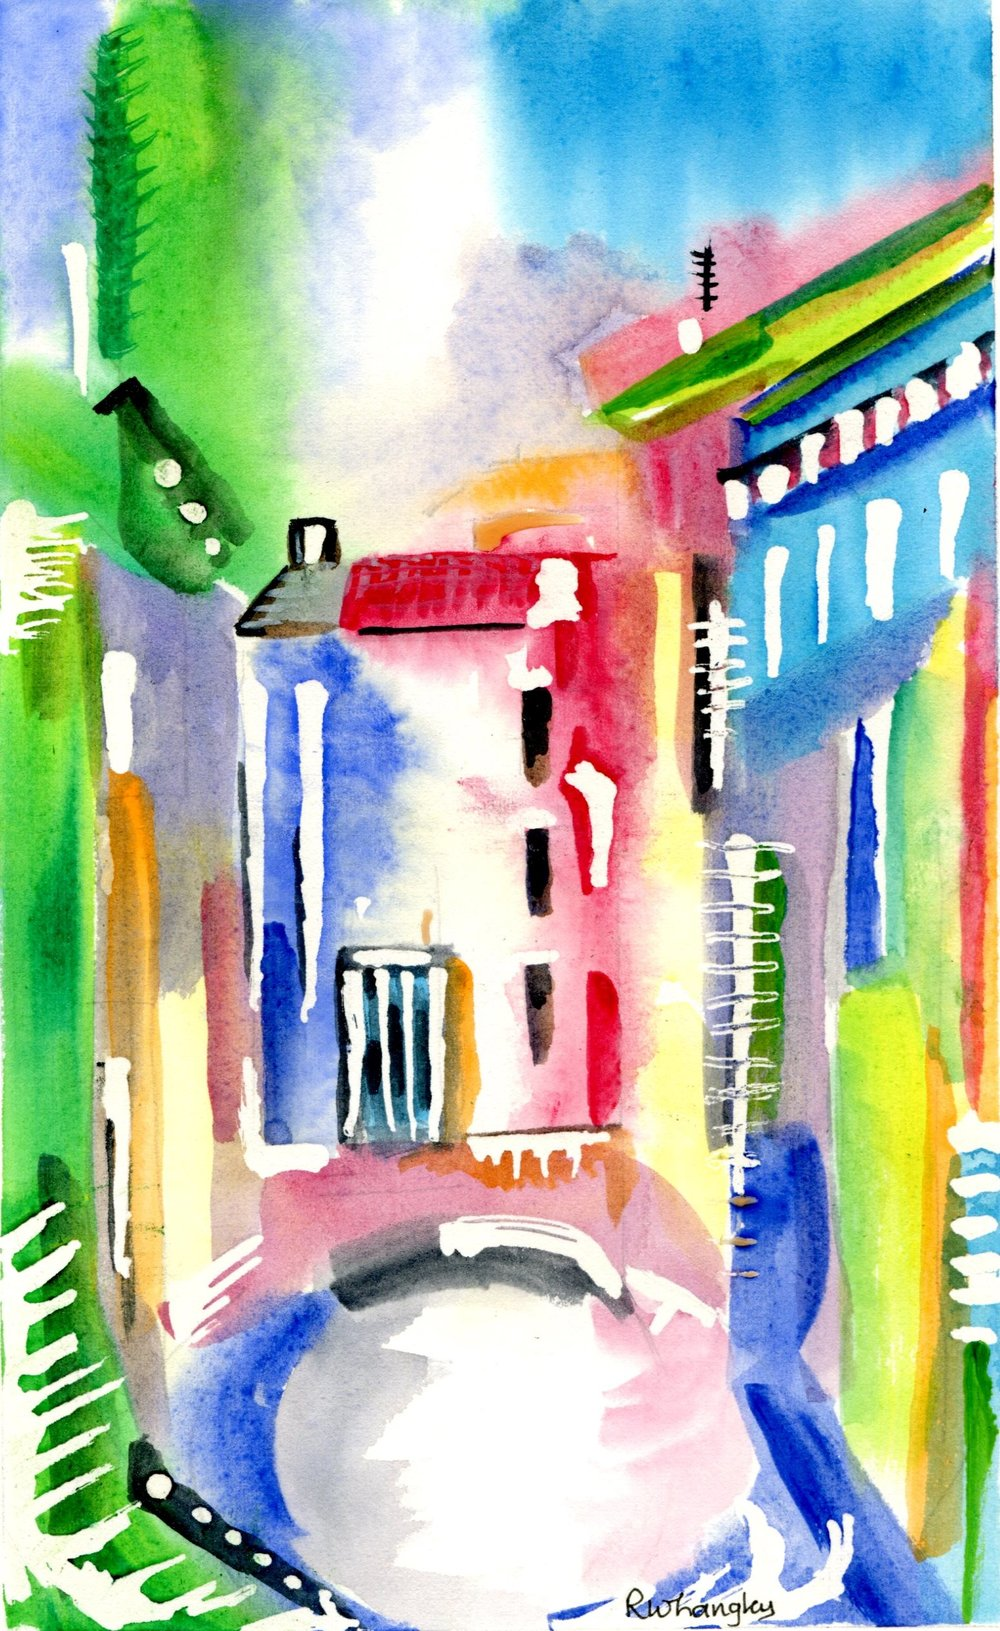 8B ROBERT LANGLEY, DREAMS, WATERCOLOUR ON PAPER